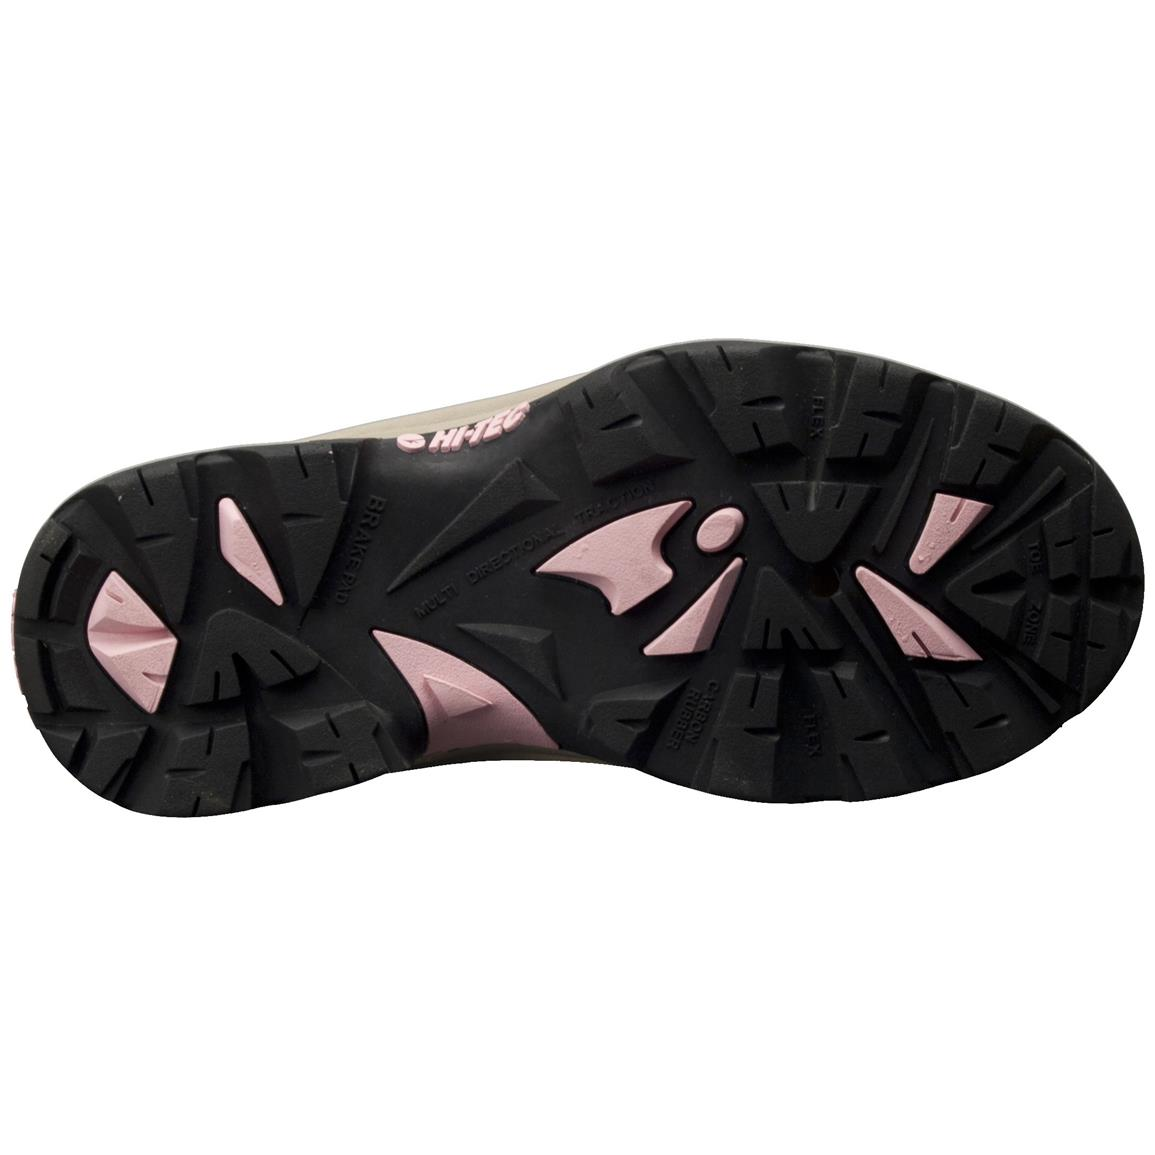 Sturdy rubber cup outsole provides greater stability and protection